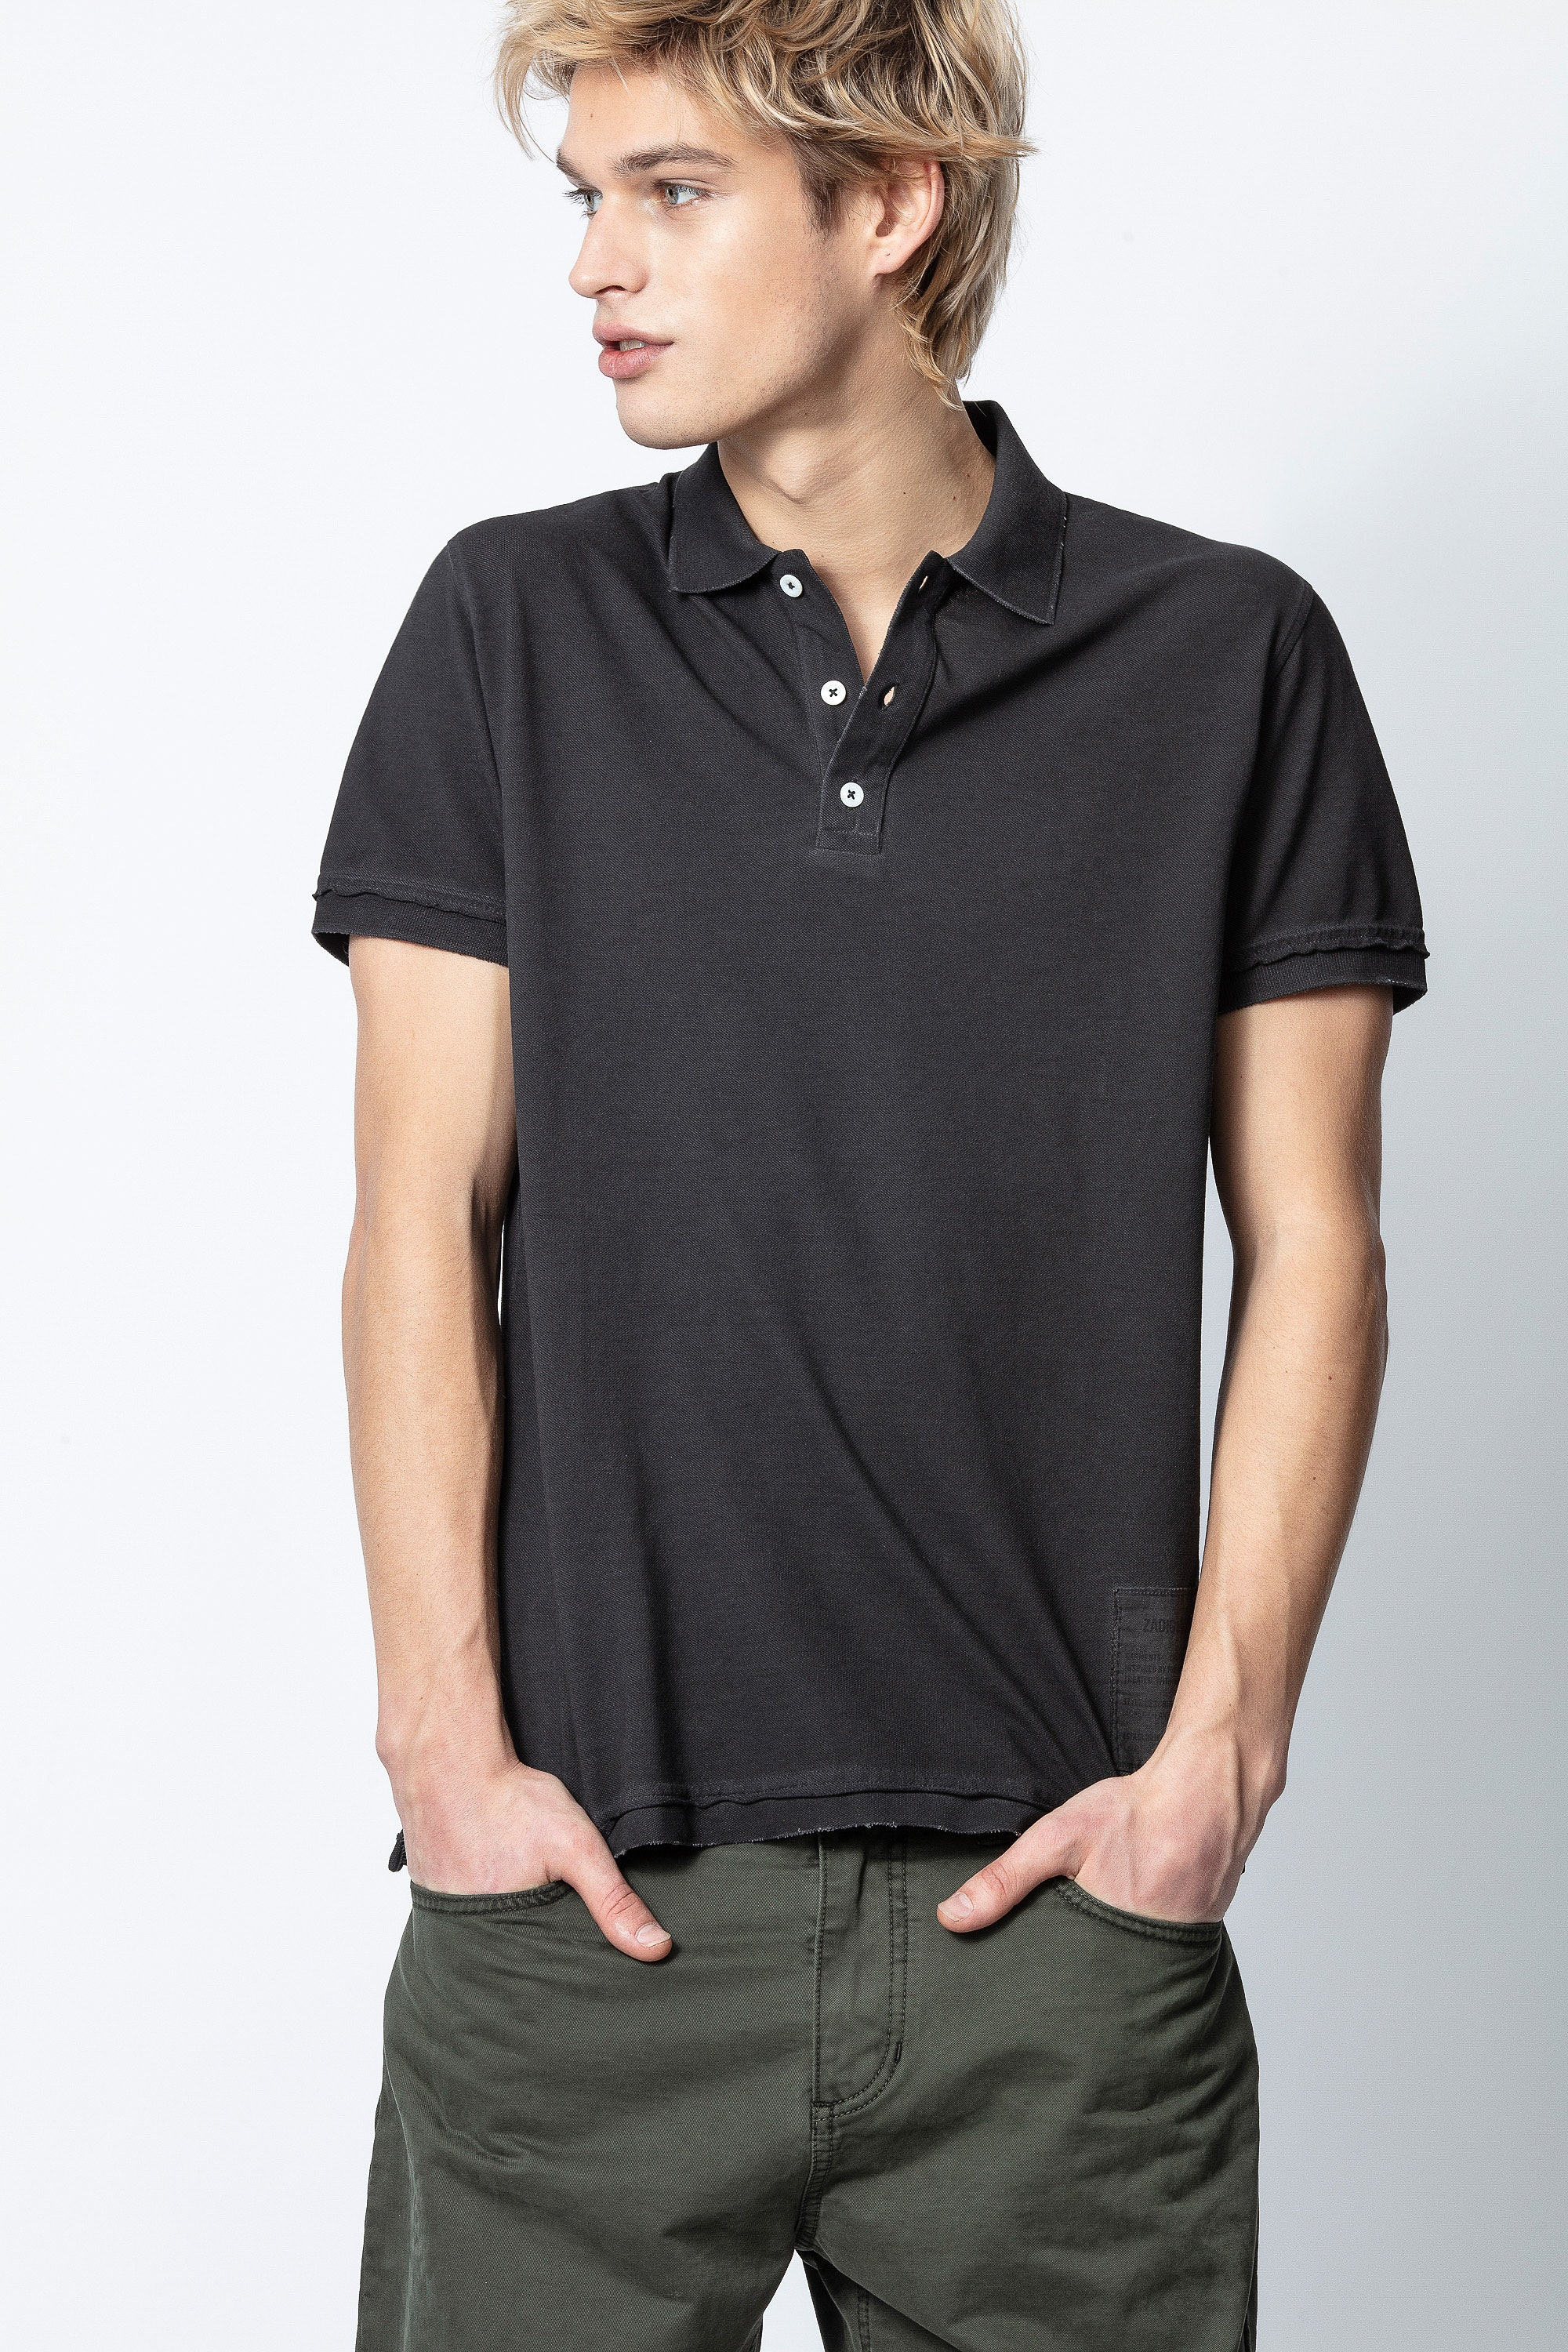 Trot Polo Shirt